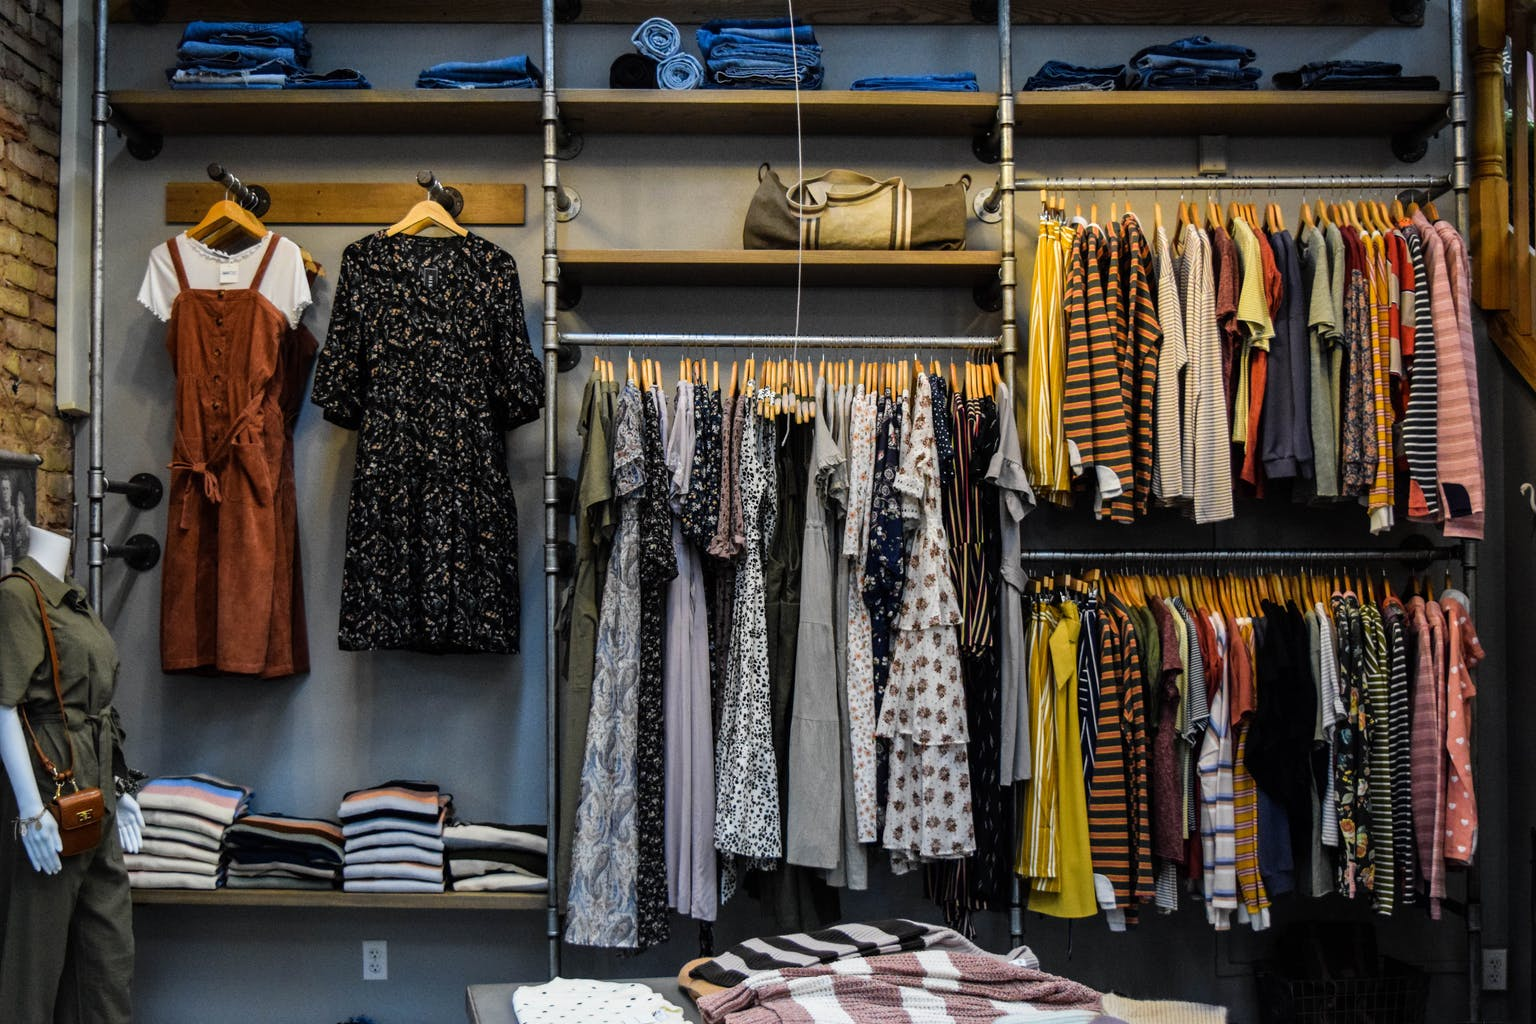 seema.com, seema newsletter, seema network, seema fashion, seema fashion for south asians, seema trends, seema fashion trends, fashion trends during the pandemic, purge in summertime, what to do with overflowing closets, Marie kondo, life changing habits of tidying up, tossing the someday clothes, fashion, summer fashion during the pandemic, unsplash, burgess milnor, burgess milnor unsplash